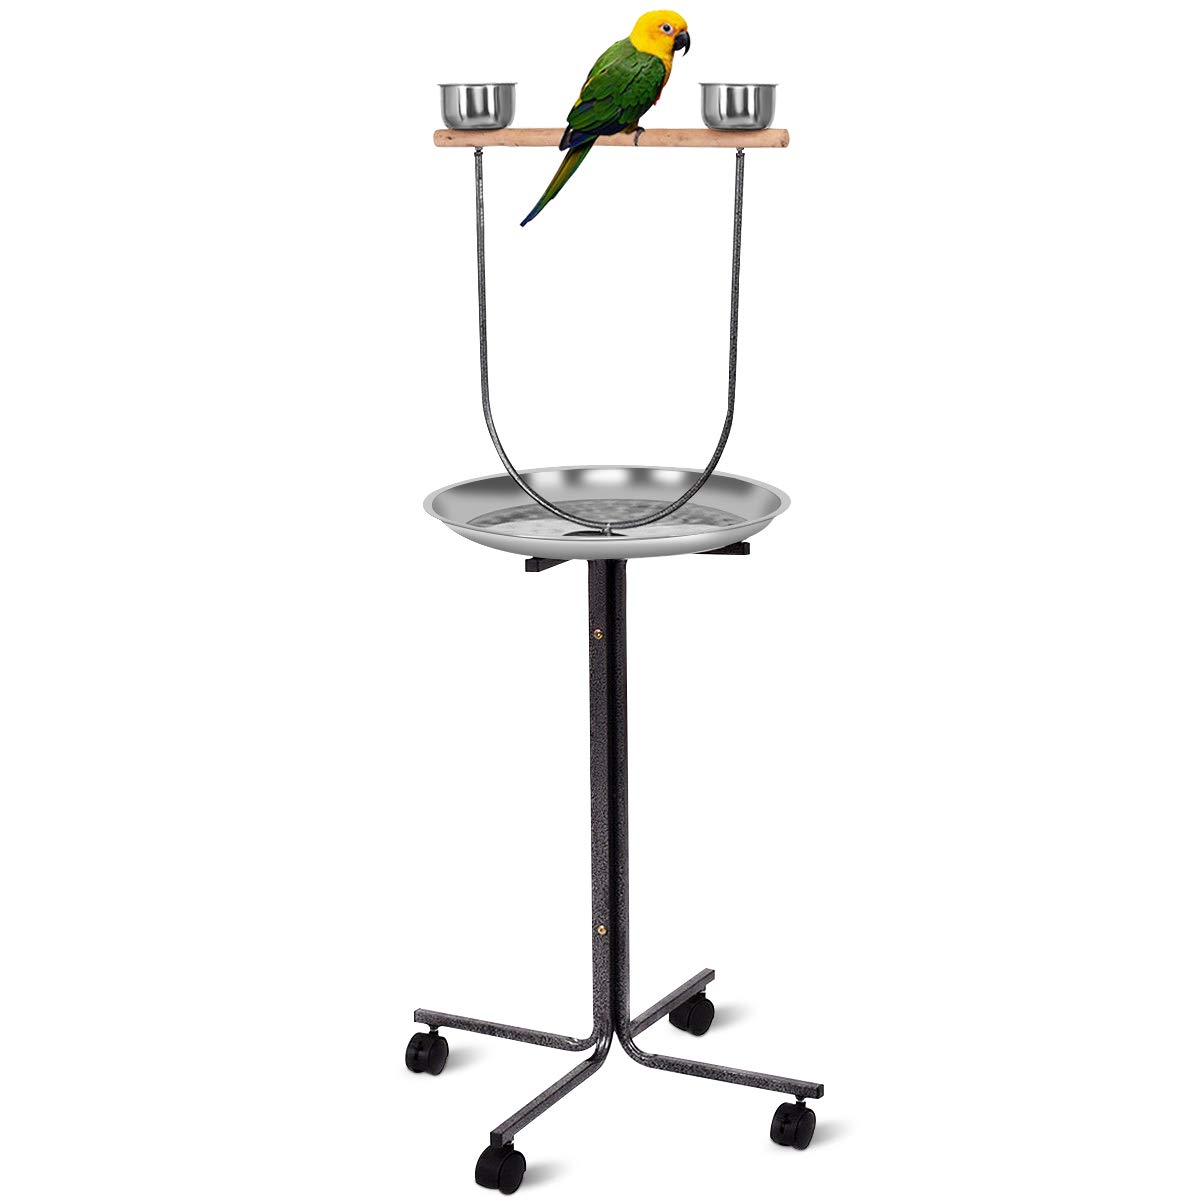 Giantex 51'' Pet Bird Play Stand, Wood Bar Large Stainless Steel Tray Feeder Parrot Perch W/ 2 Feeding Bowls & Locking Wheels, Parrot Pet Bird Play T-Stand by Giantex